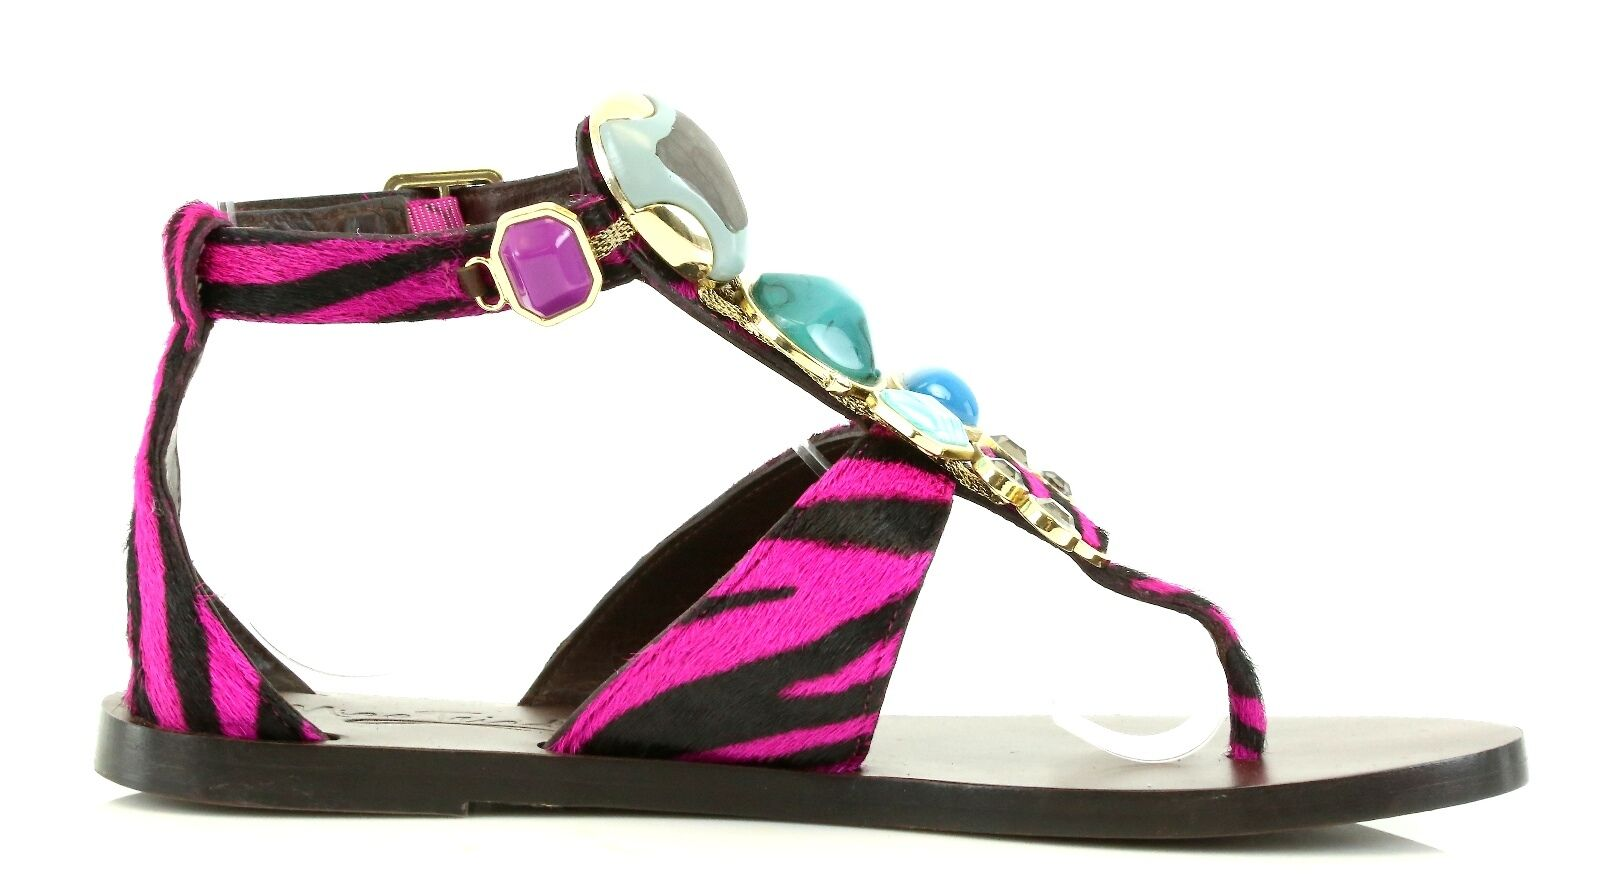 Miss.Trish STONED Pink Zebra Print Ankle Ankle Ankle Strap Sandals 7072 Size 10 M NEW f53449